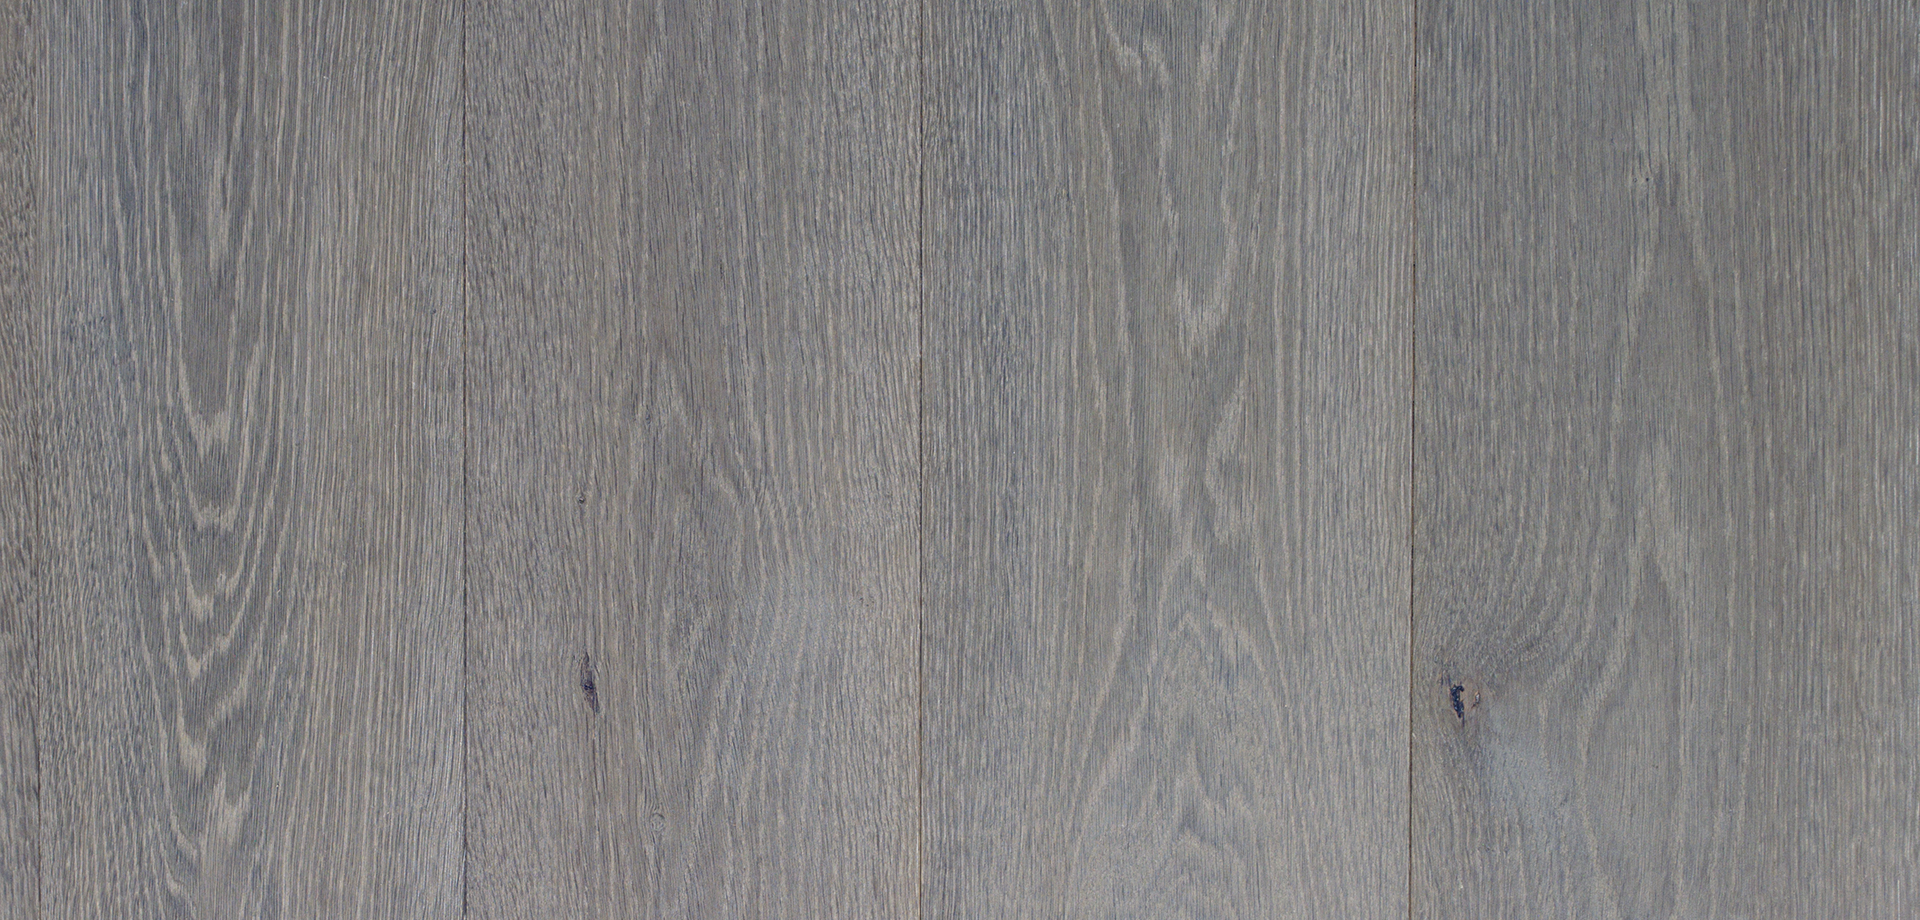 Our Range Of Oak Floorboards Tongue N Groove Flooring